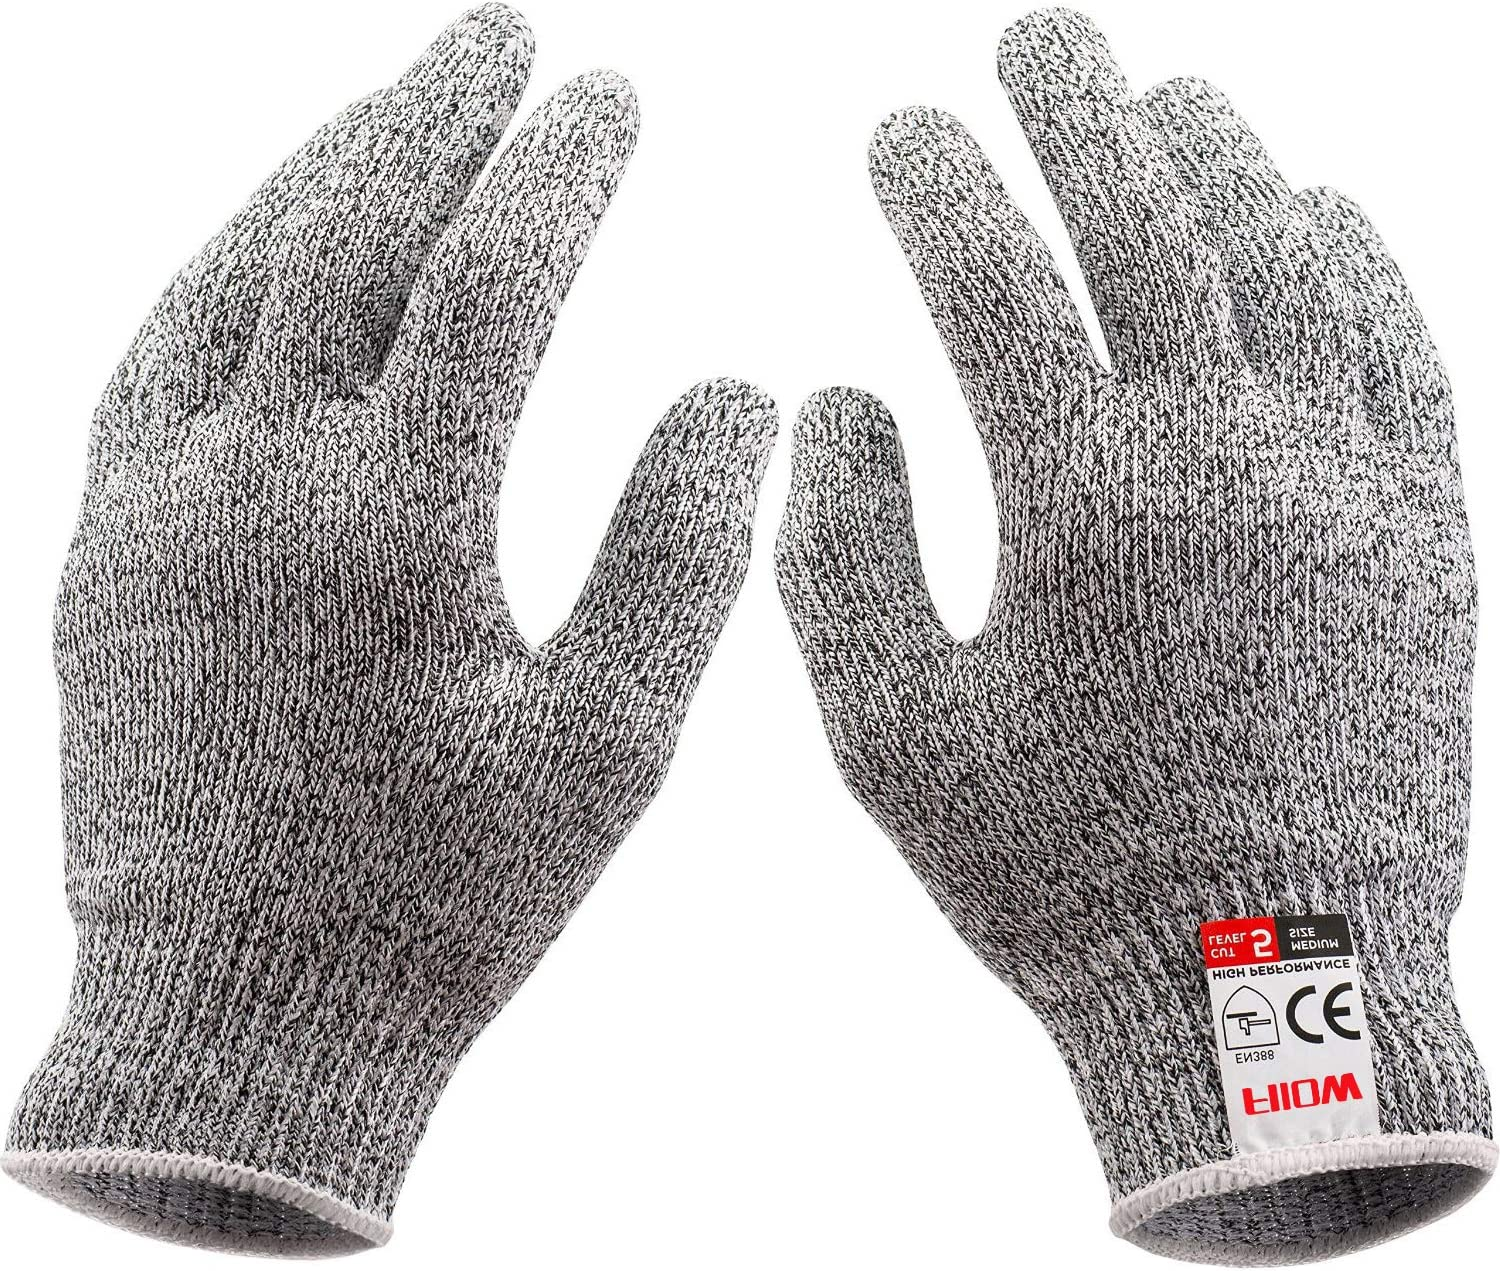 Cut Resistant Kitchen Gloves (1 Pair) for Men Women - Food Grade Level 5 Protection Safety Cutting Gloves - M